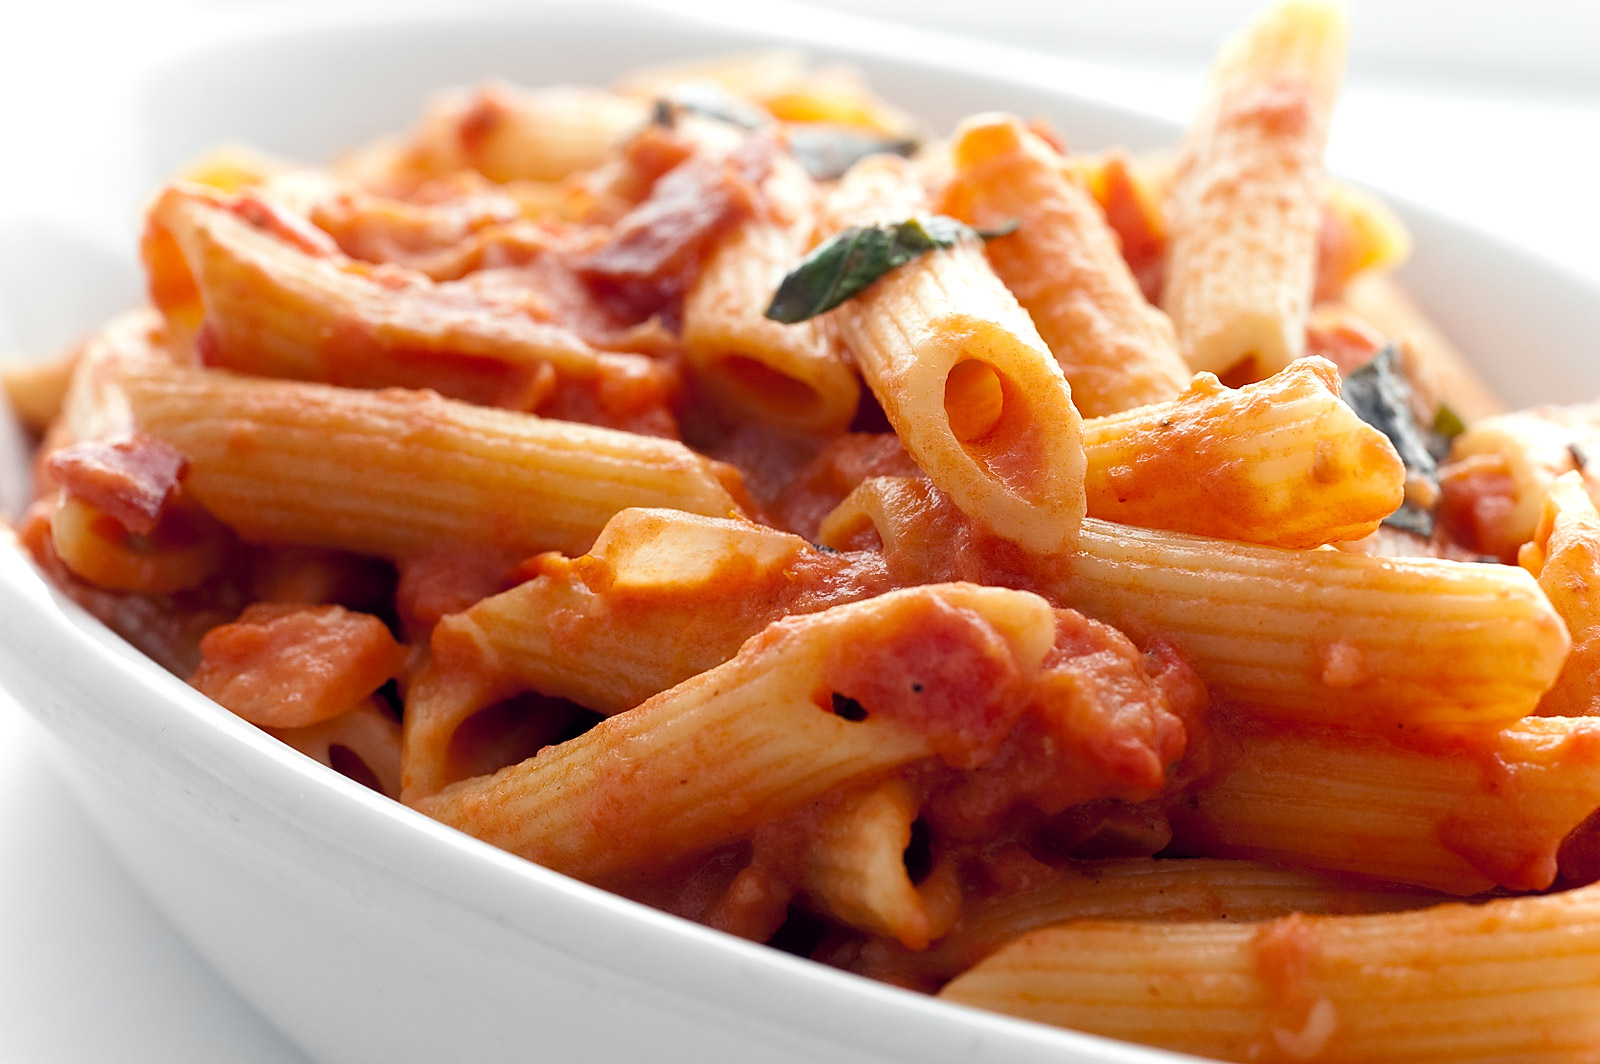 Bashionista: Penne with Skyy Vodka Sauce and Cajun Airline Chicken